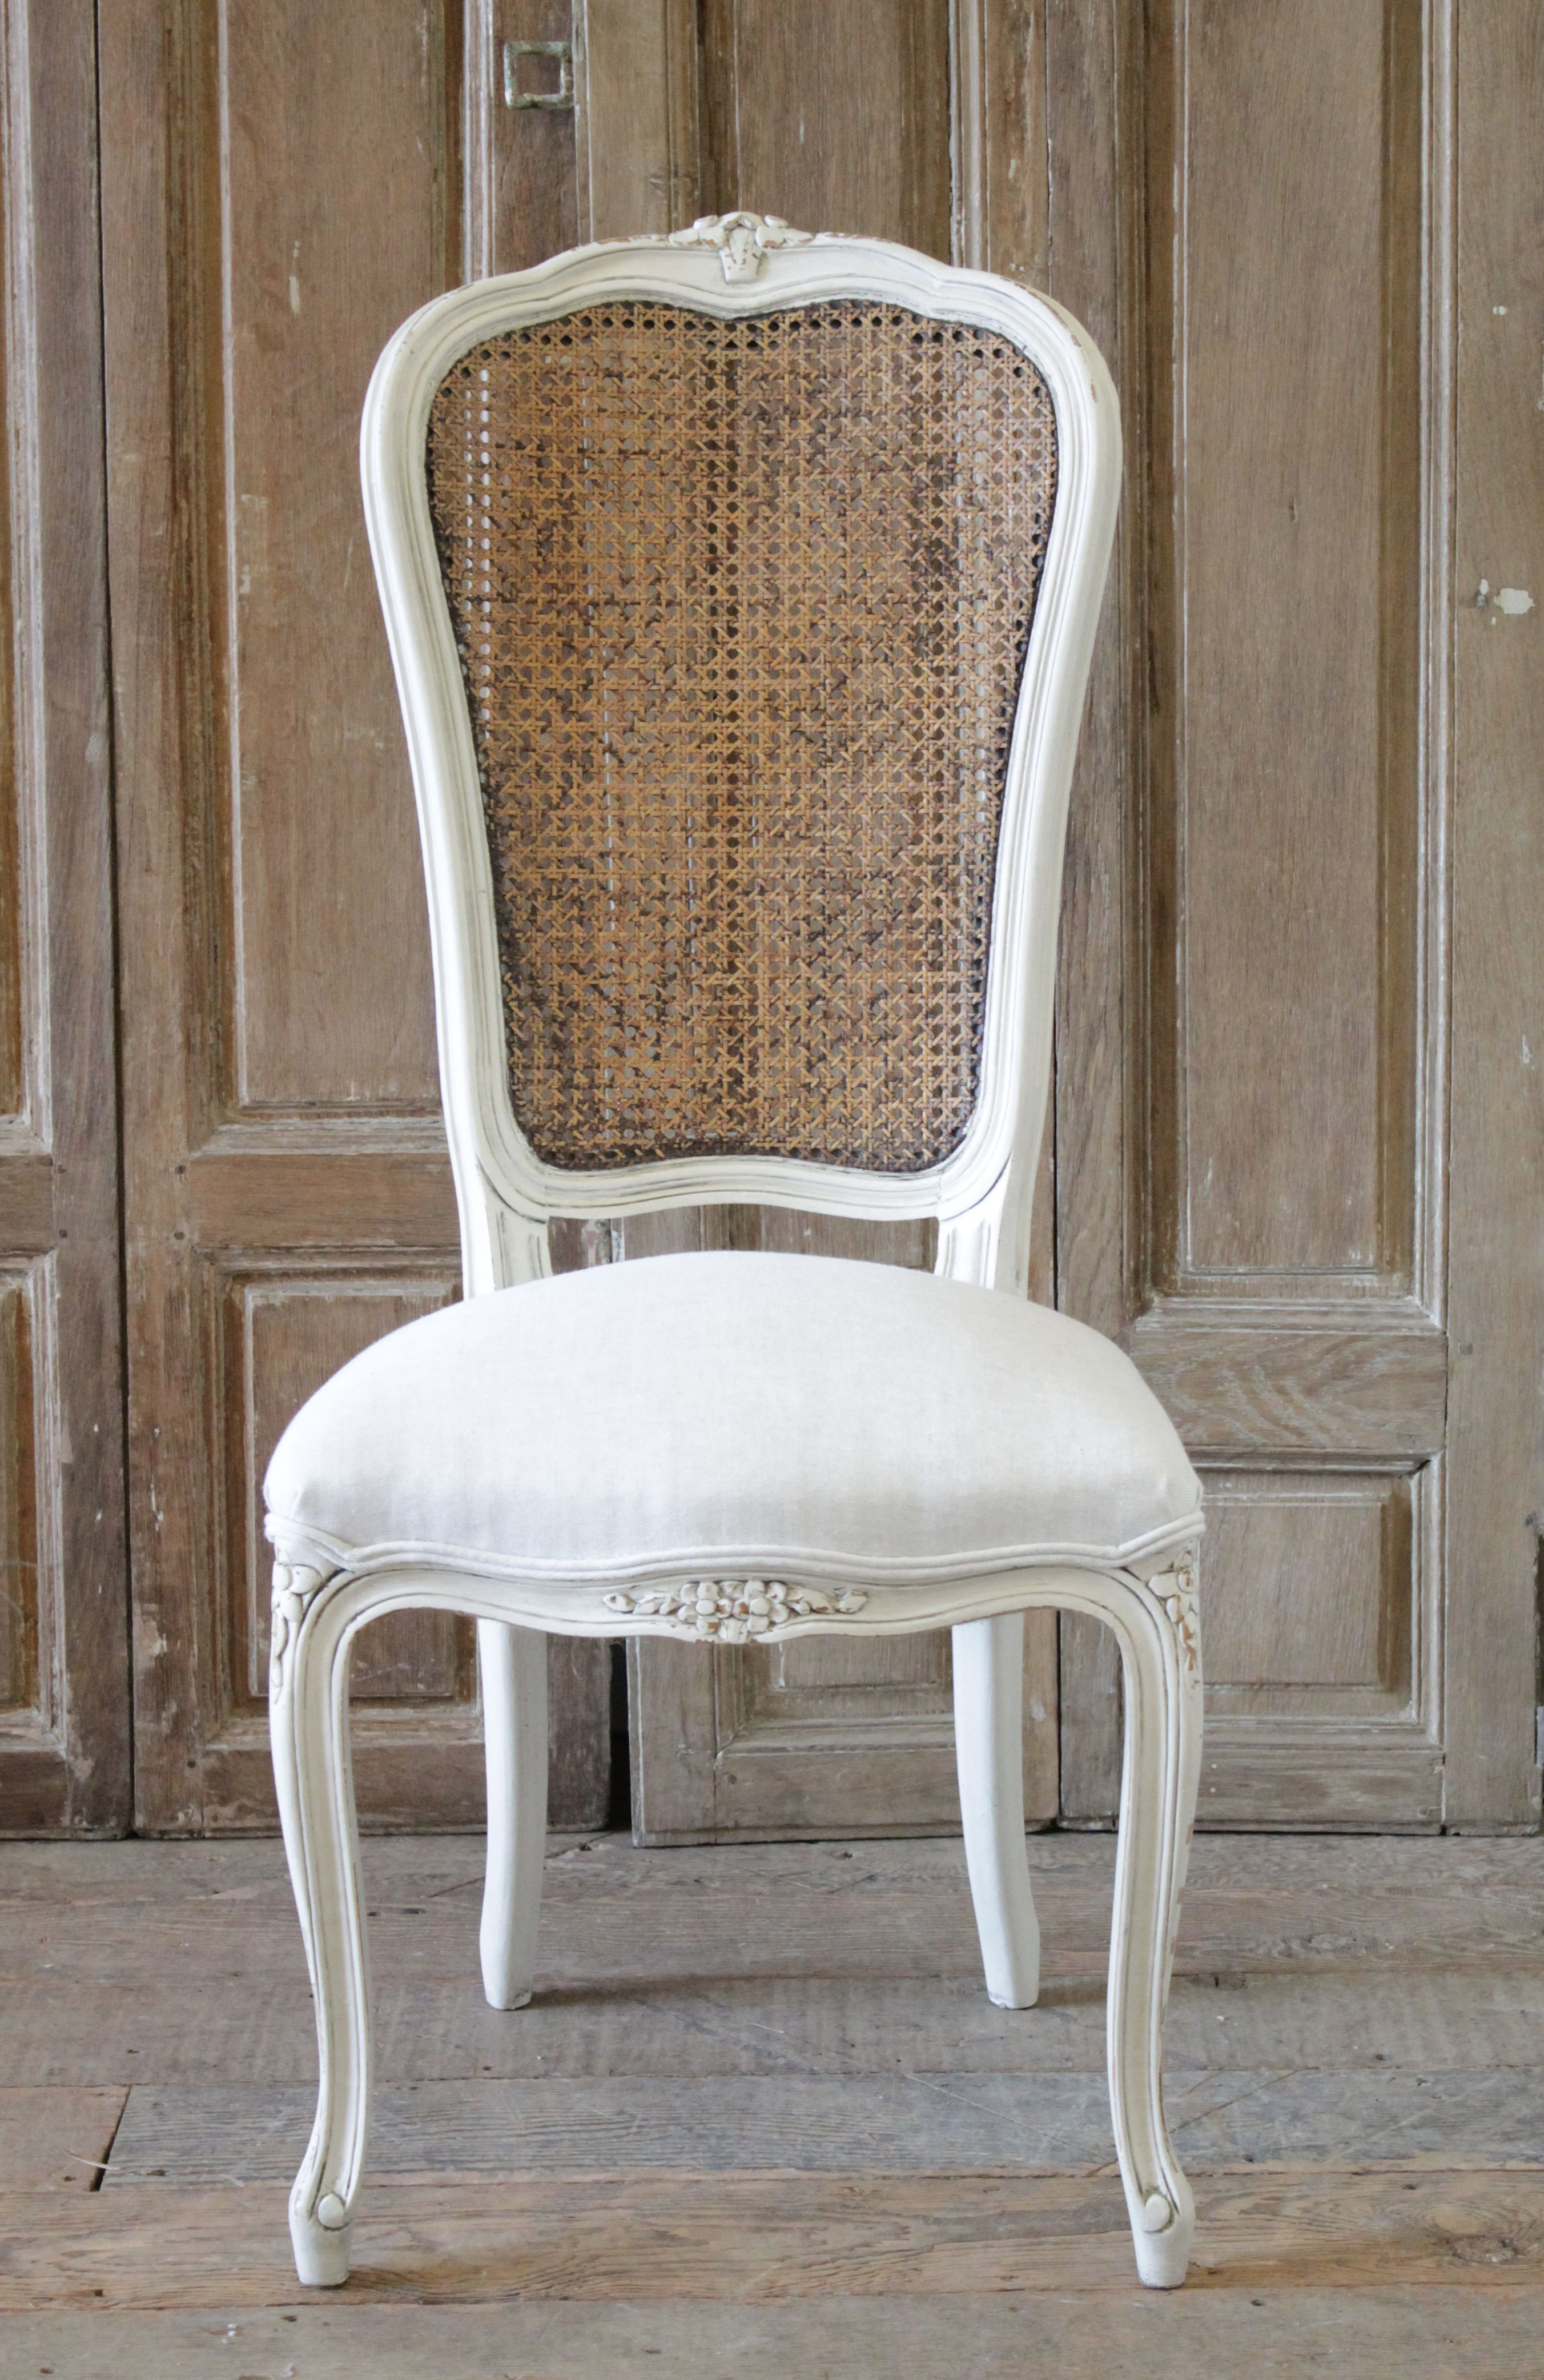 Superb 20Th Century French Country Style Cane Back Accent Chair Pabps2019 Chair Design Images Pabps2019Com